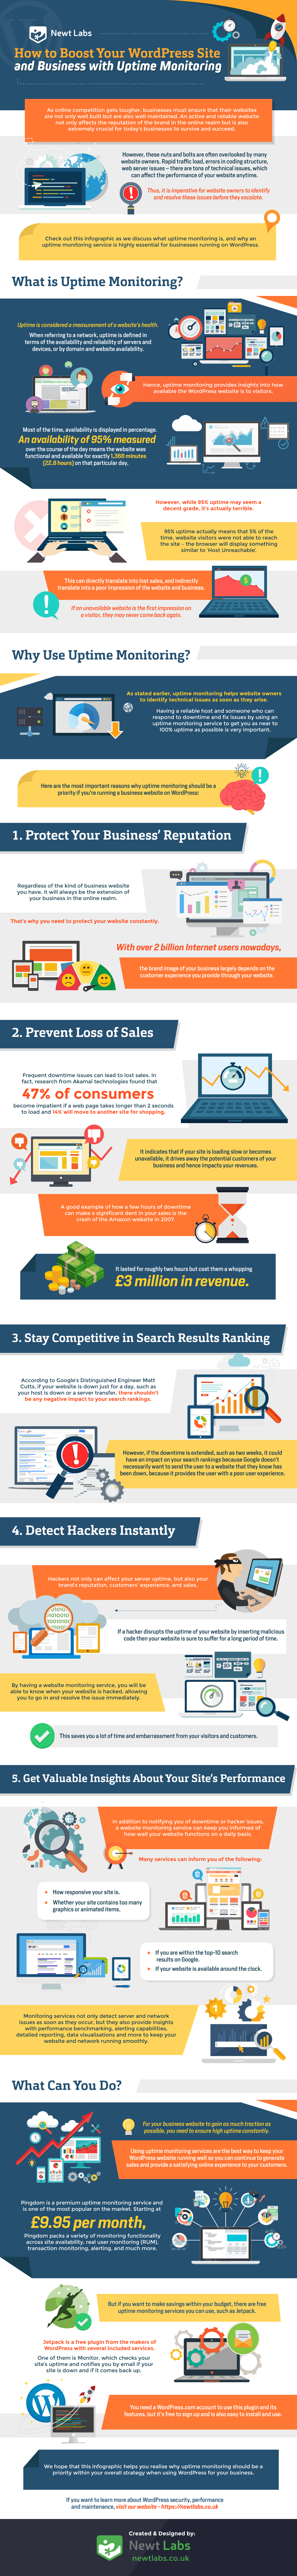 How to Boost Your WordPress Site and Business with Uptime Monitoring Infographic